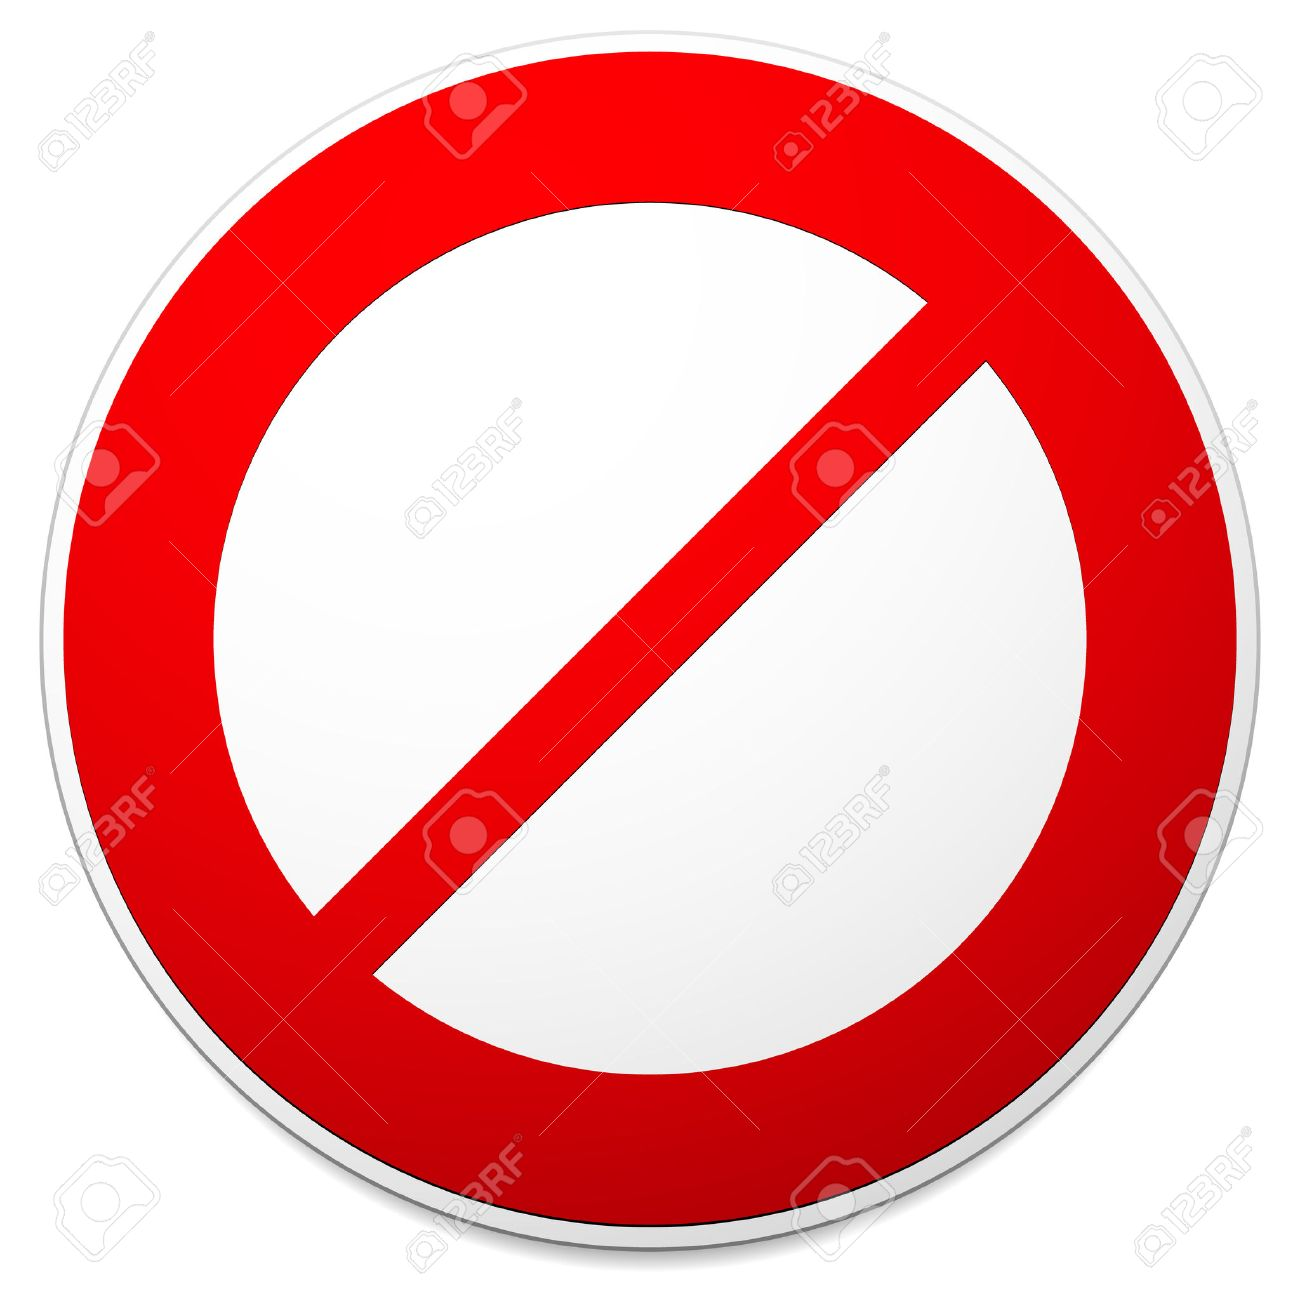 deny do not prohibition sign restriction no entry no way